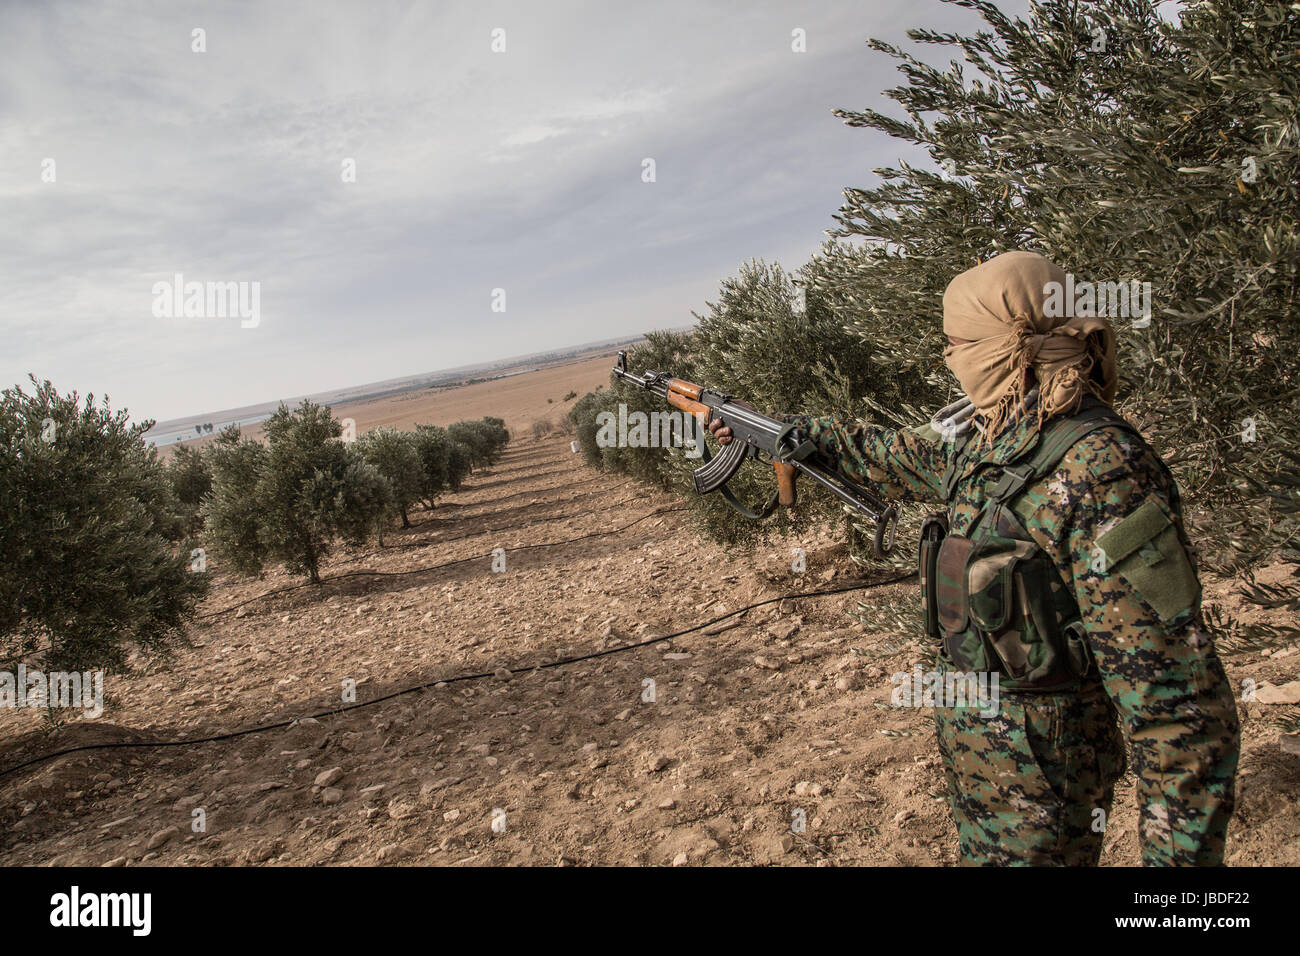 Chris Huby / Le Pictorium -  Syria / Rojava - Wrath of the Euphrates -  02/01/2017  -  Rojava  -  SYRIA - ROJAVA Stock Photo